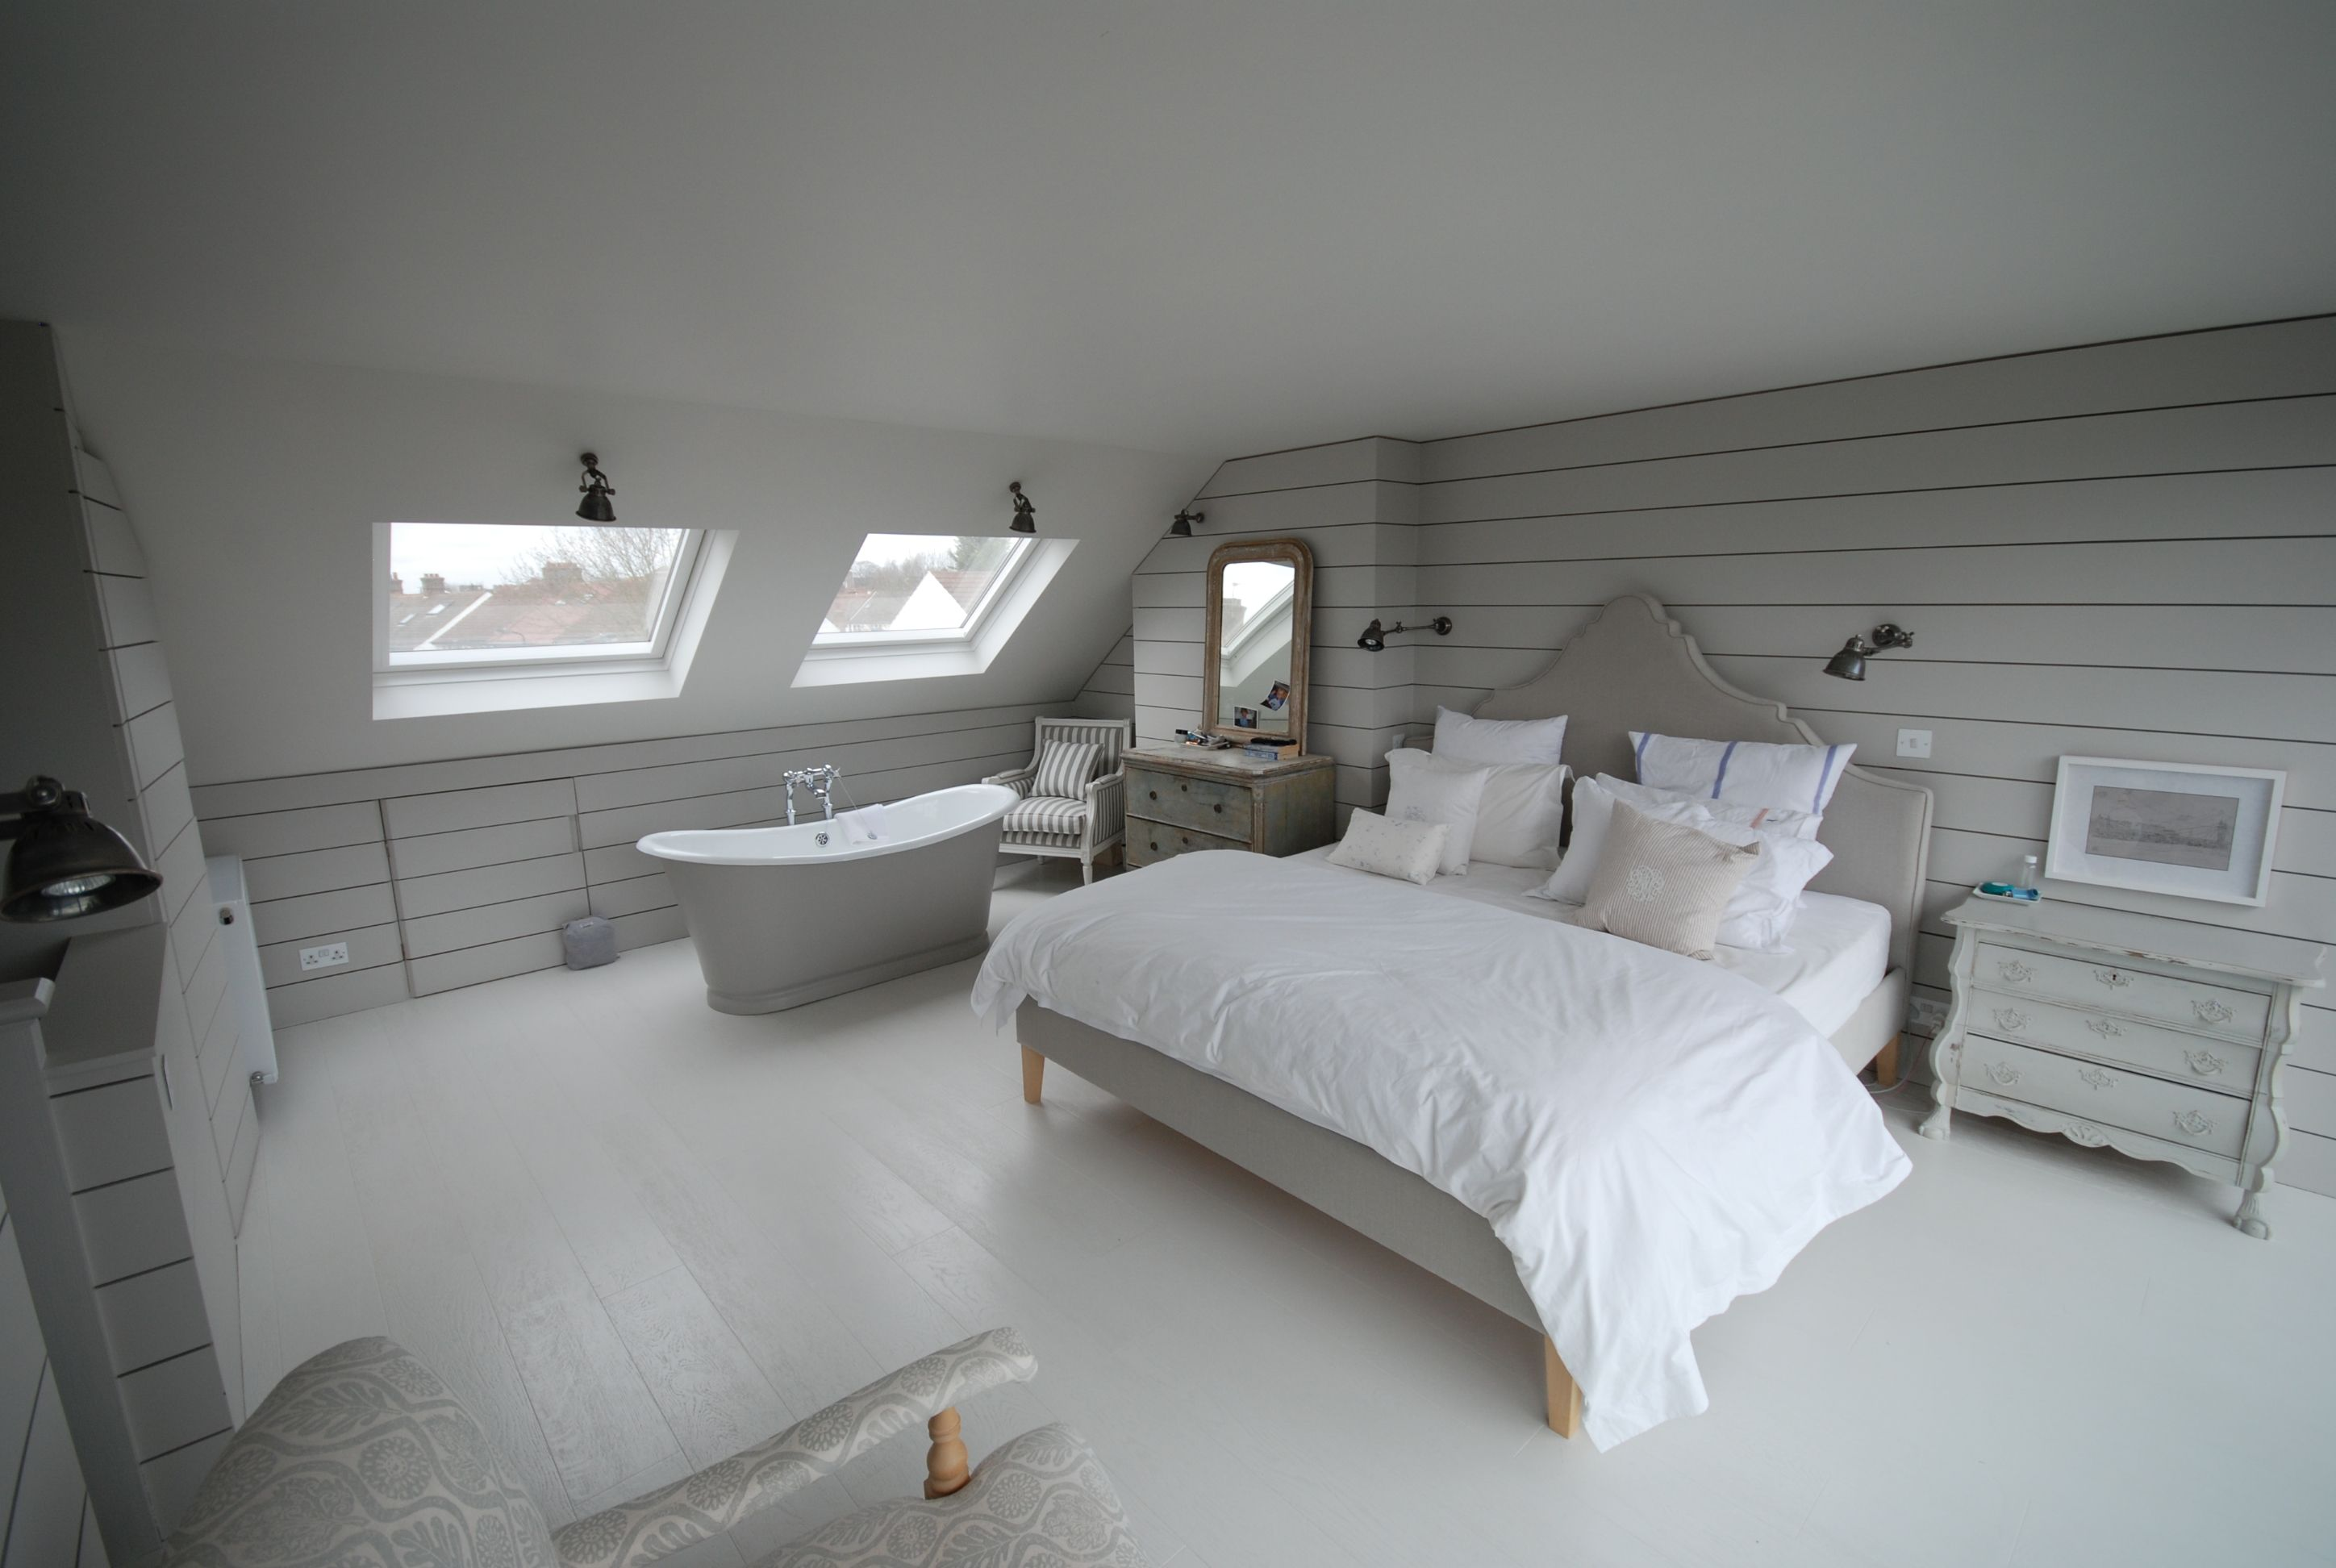 Loft Room Ideas Part - 47: Loft Conversion Bedroom North London Featured On Sarah Beeny